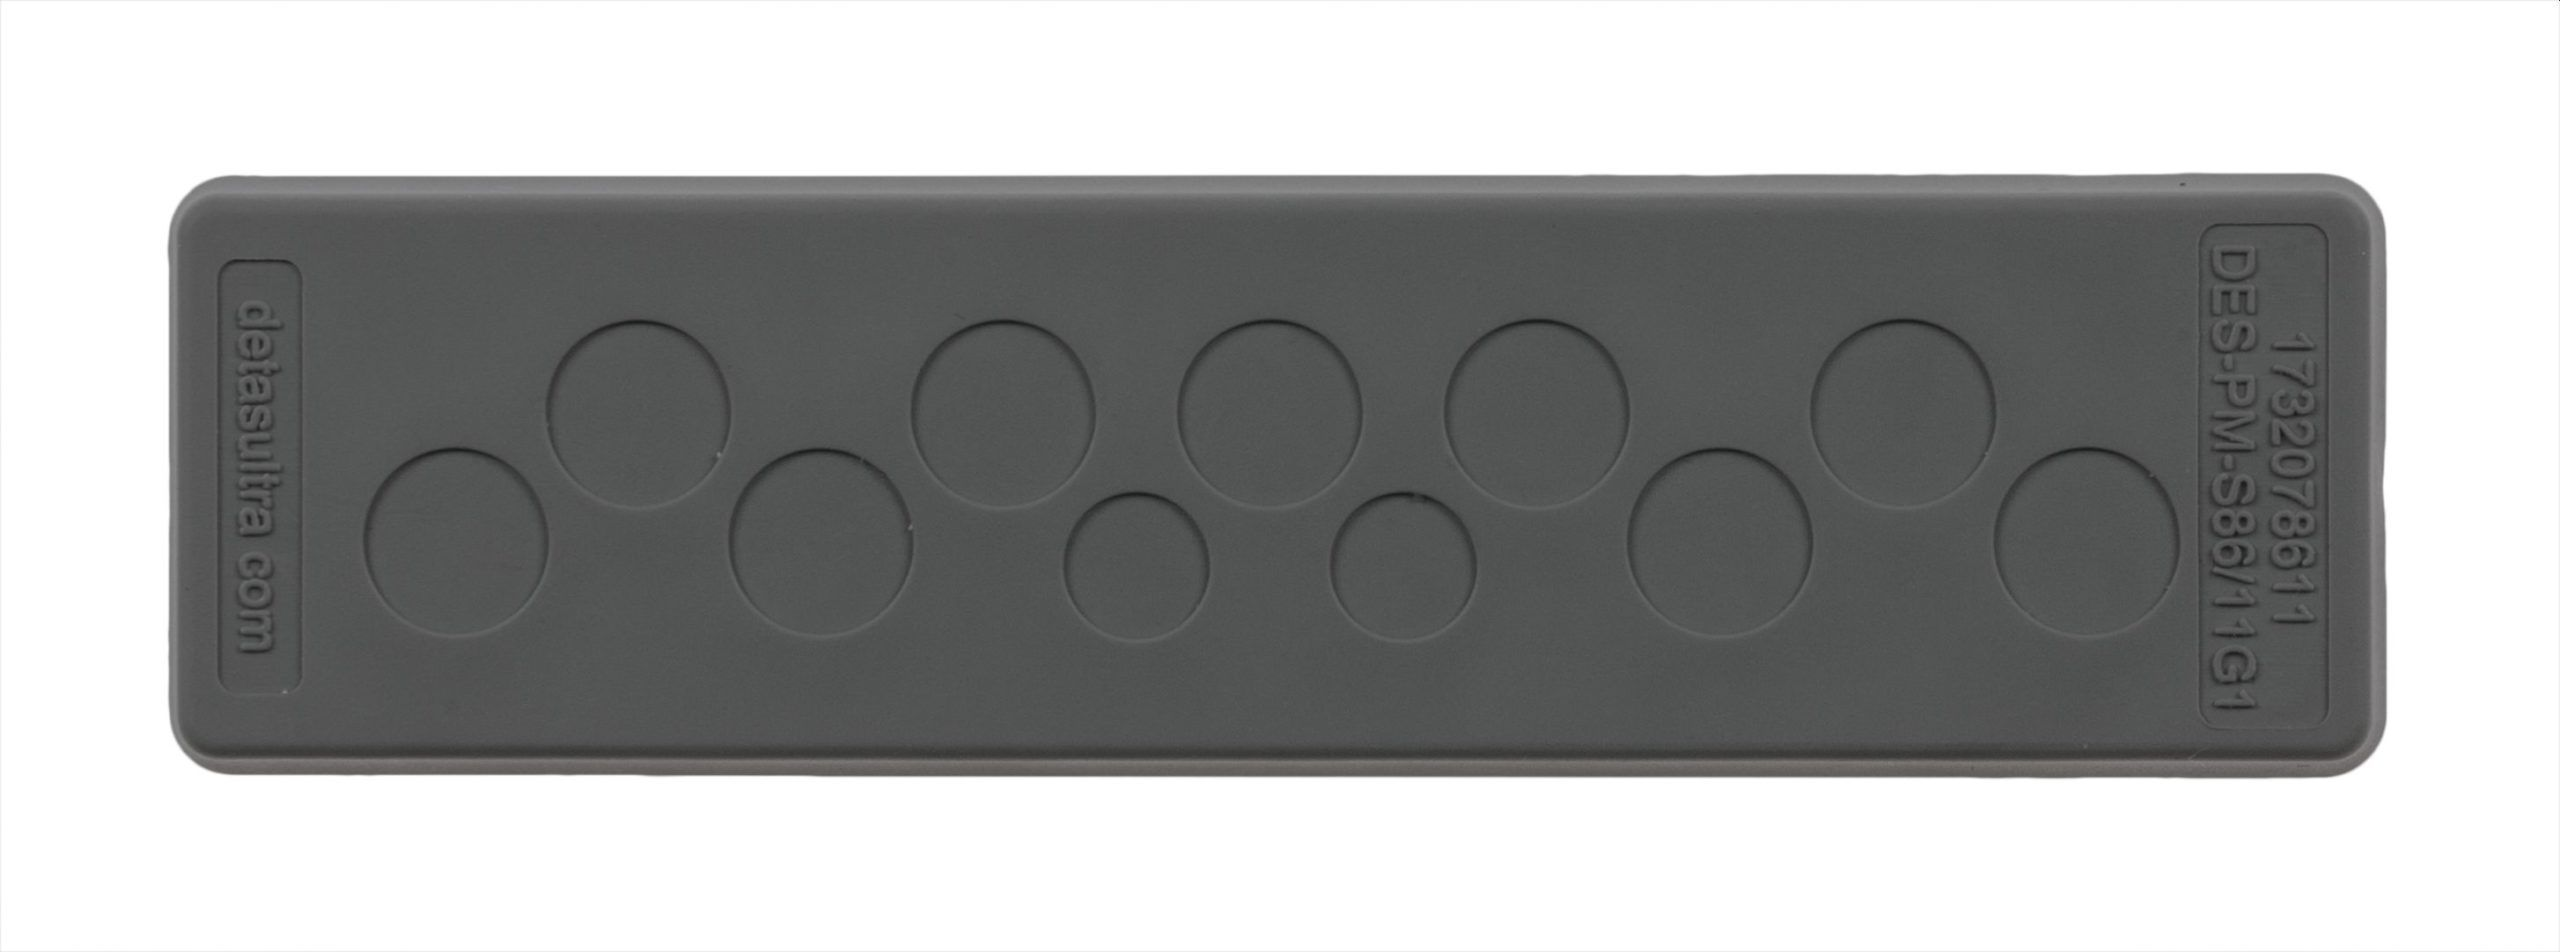 DES-PM S Cable Entry Plate